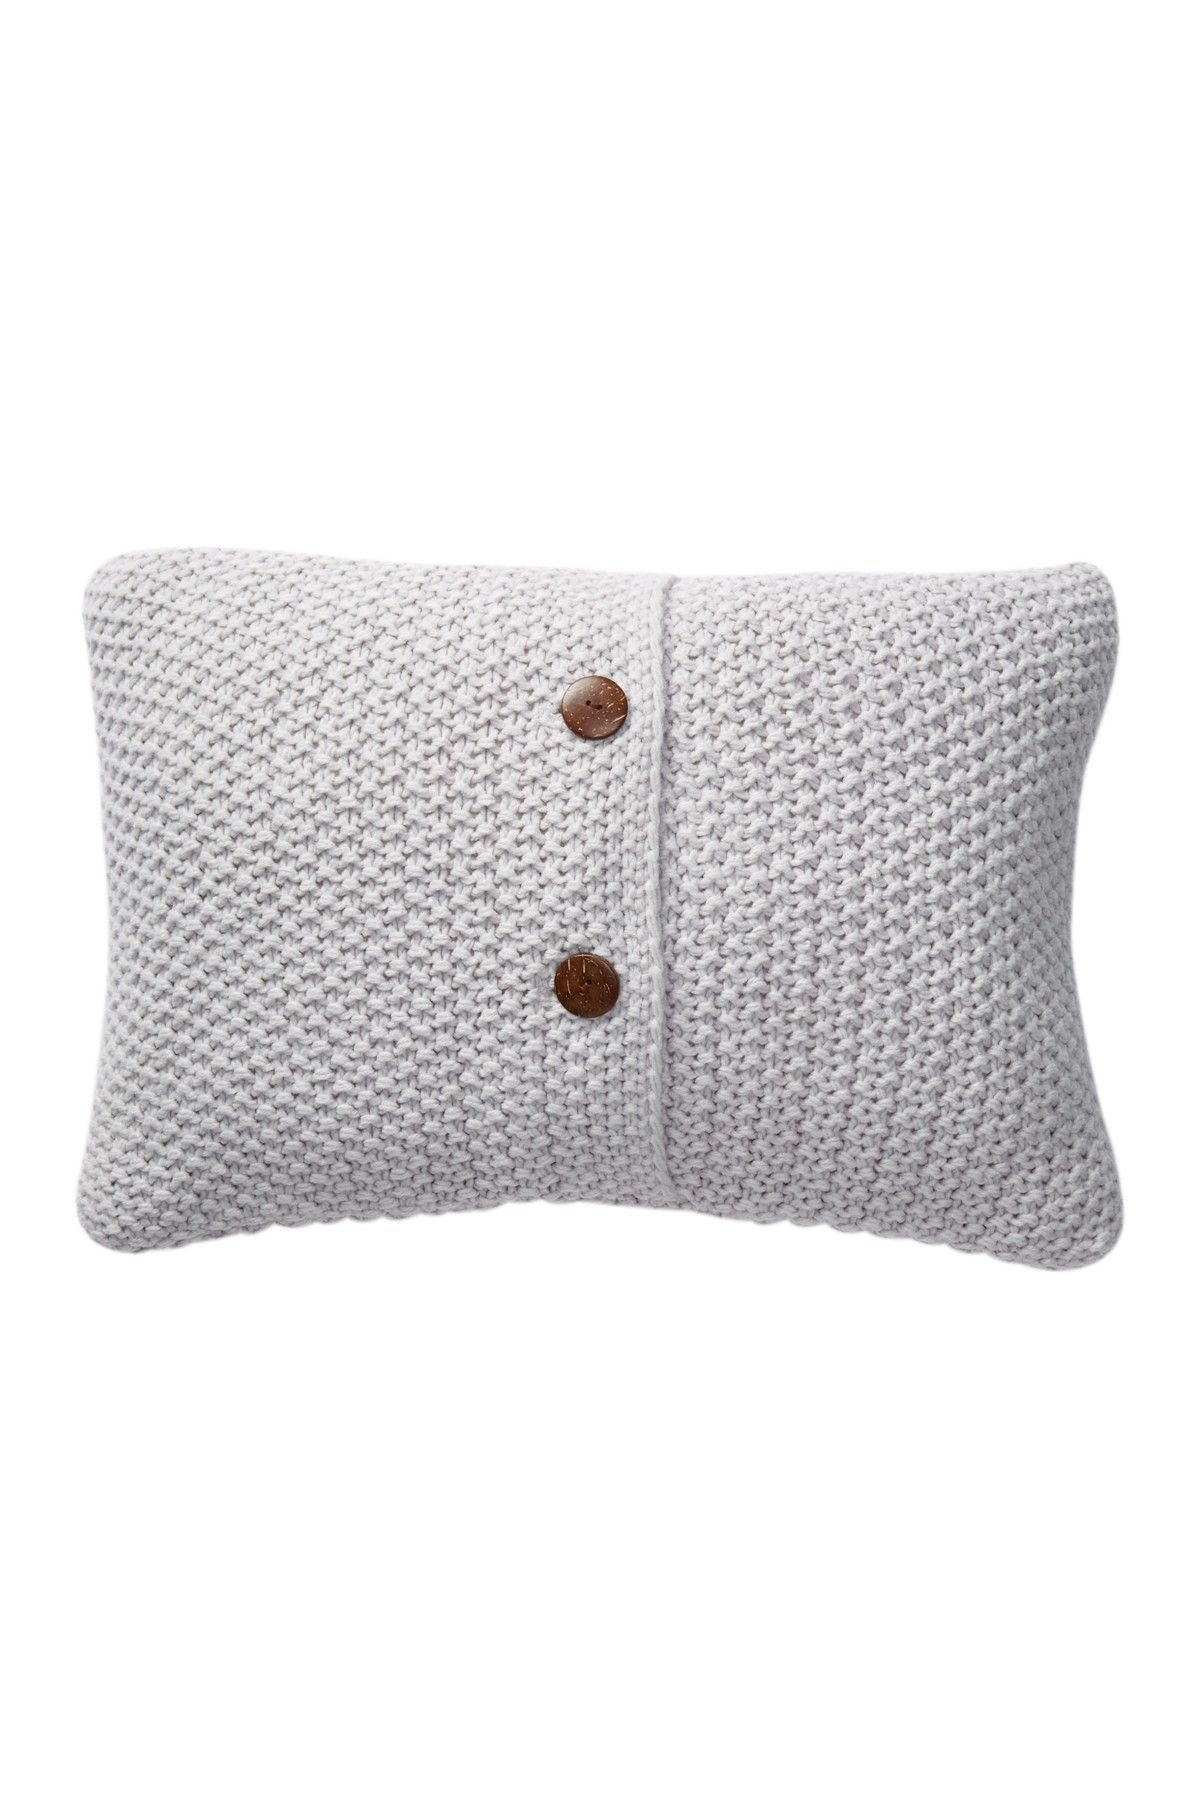 Nordstrom rack seed stitch pillow x products